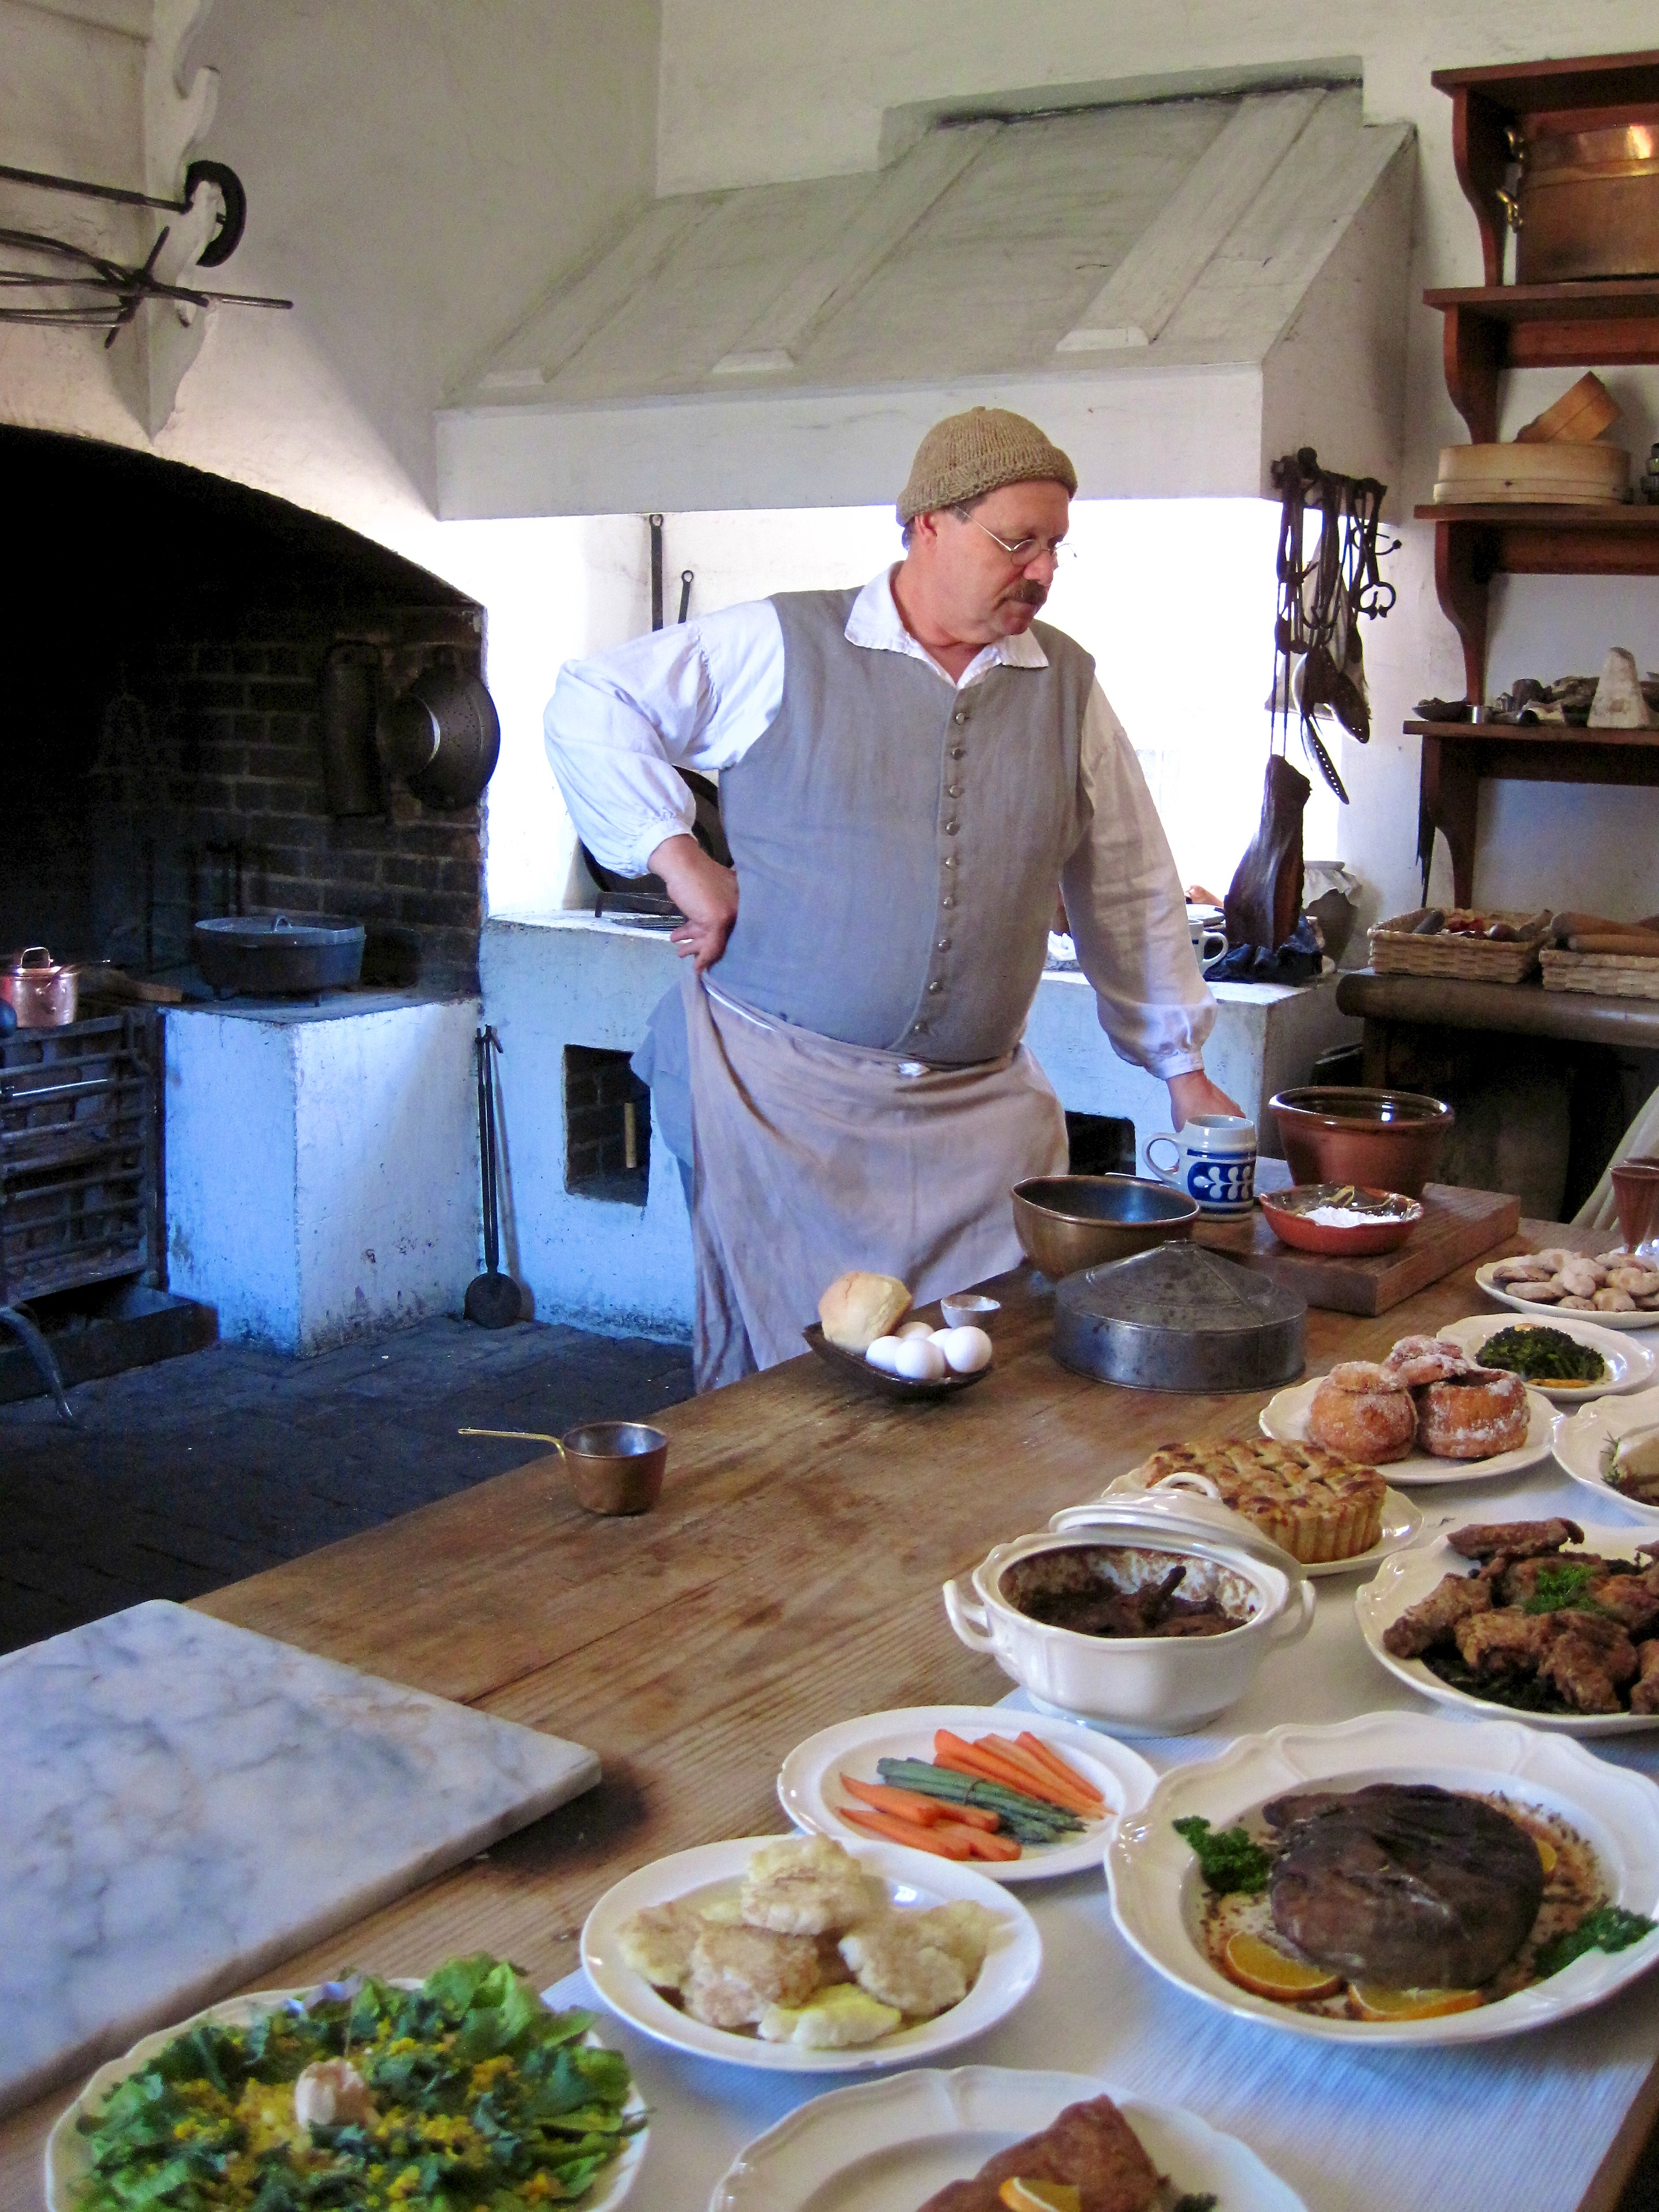 Historic Foodway's kitchen in Colonial Williamsburg. (Credit: Via Tsuji/Flickr/CC BY-NC-ND 2.0)